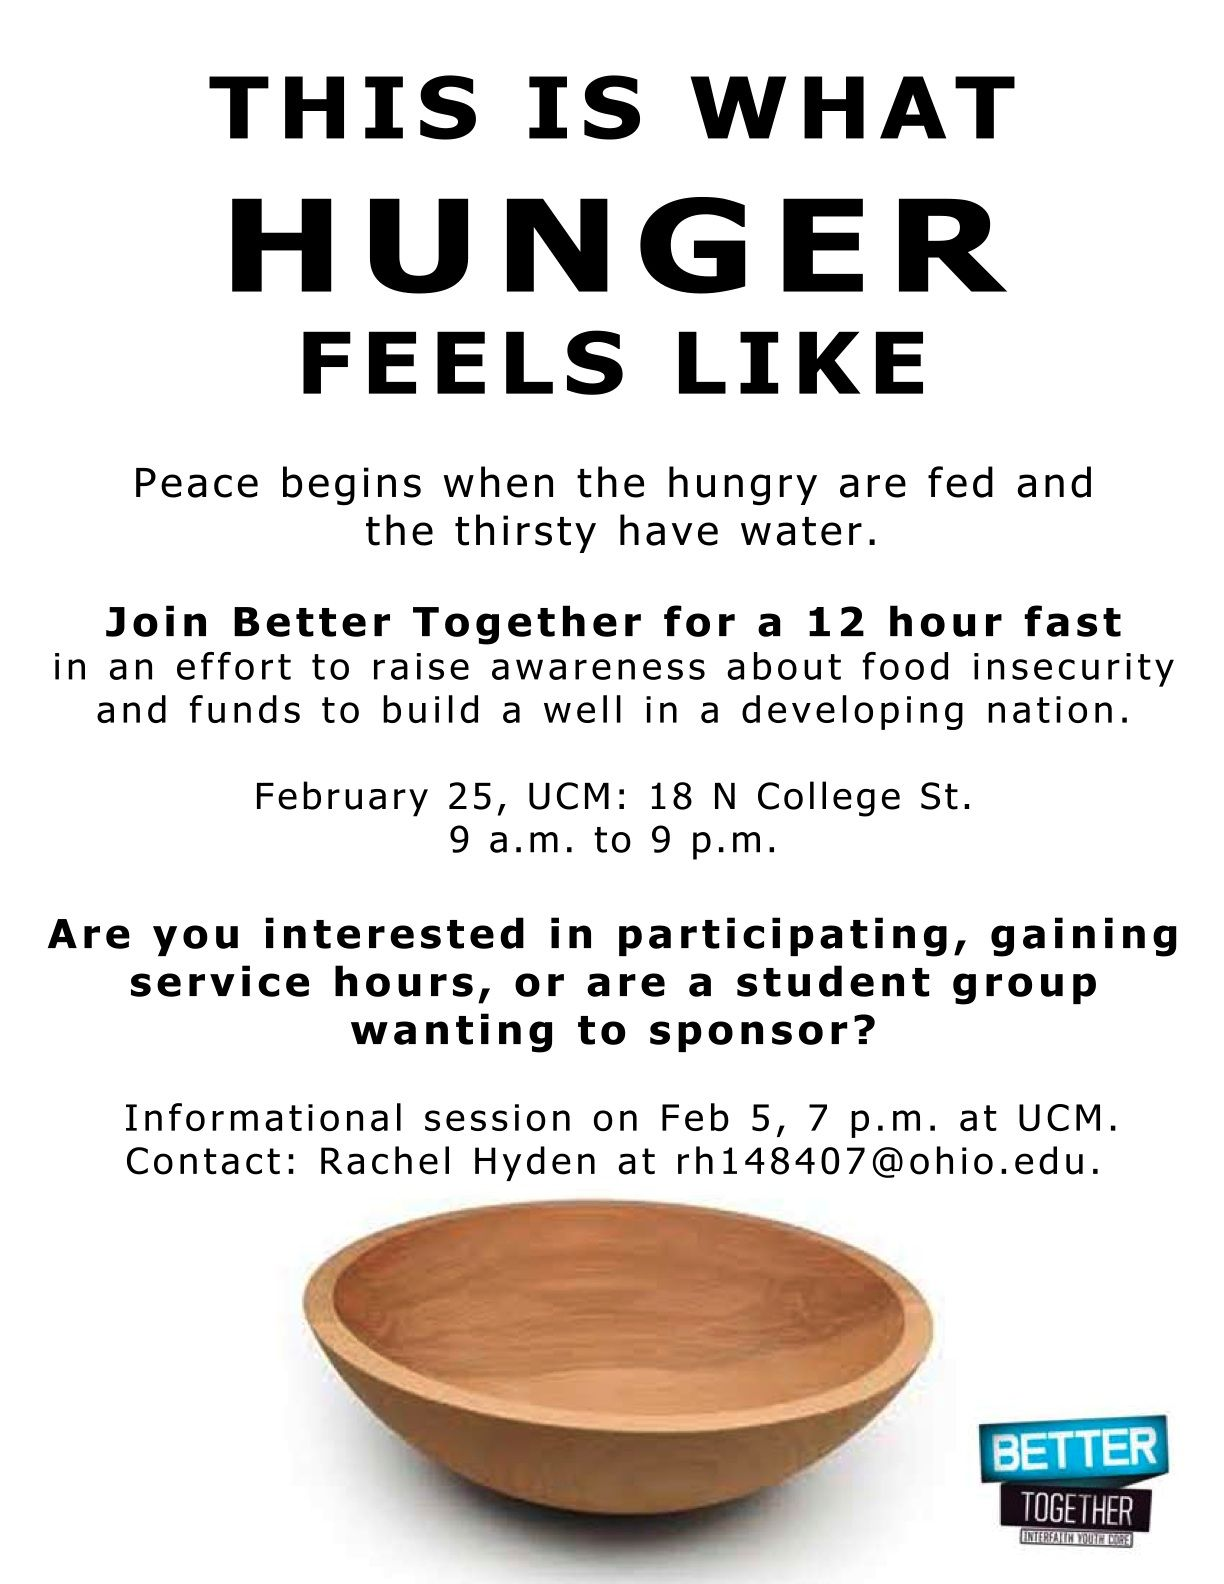 At Better Together we believe peace begins when the hungry are fed and the thirsty have water, so we held a 12 hour fast to raise awareness about food insecurity in Appalachia and funds for our well project. We collected 400 dollars in donations that day! Committee member Allison wrote a Letter to the Editor-- http://www.athensnews.com/ohio/article-36167-event-saturday-will-highlight-issue-of-local-food-insecurity, and a story was written in the local Speakeasy Magazine…